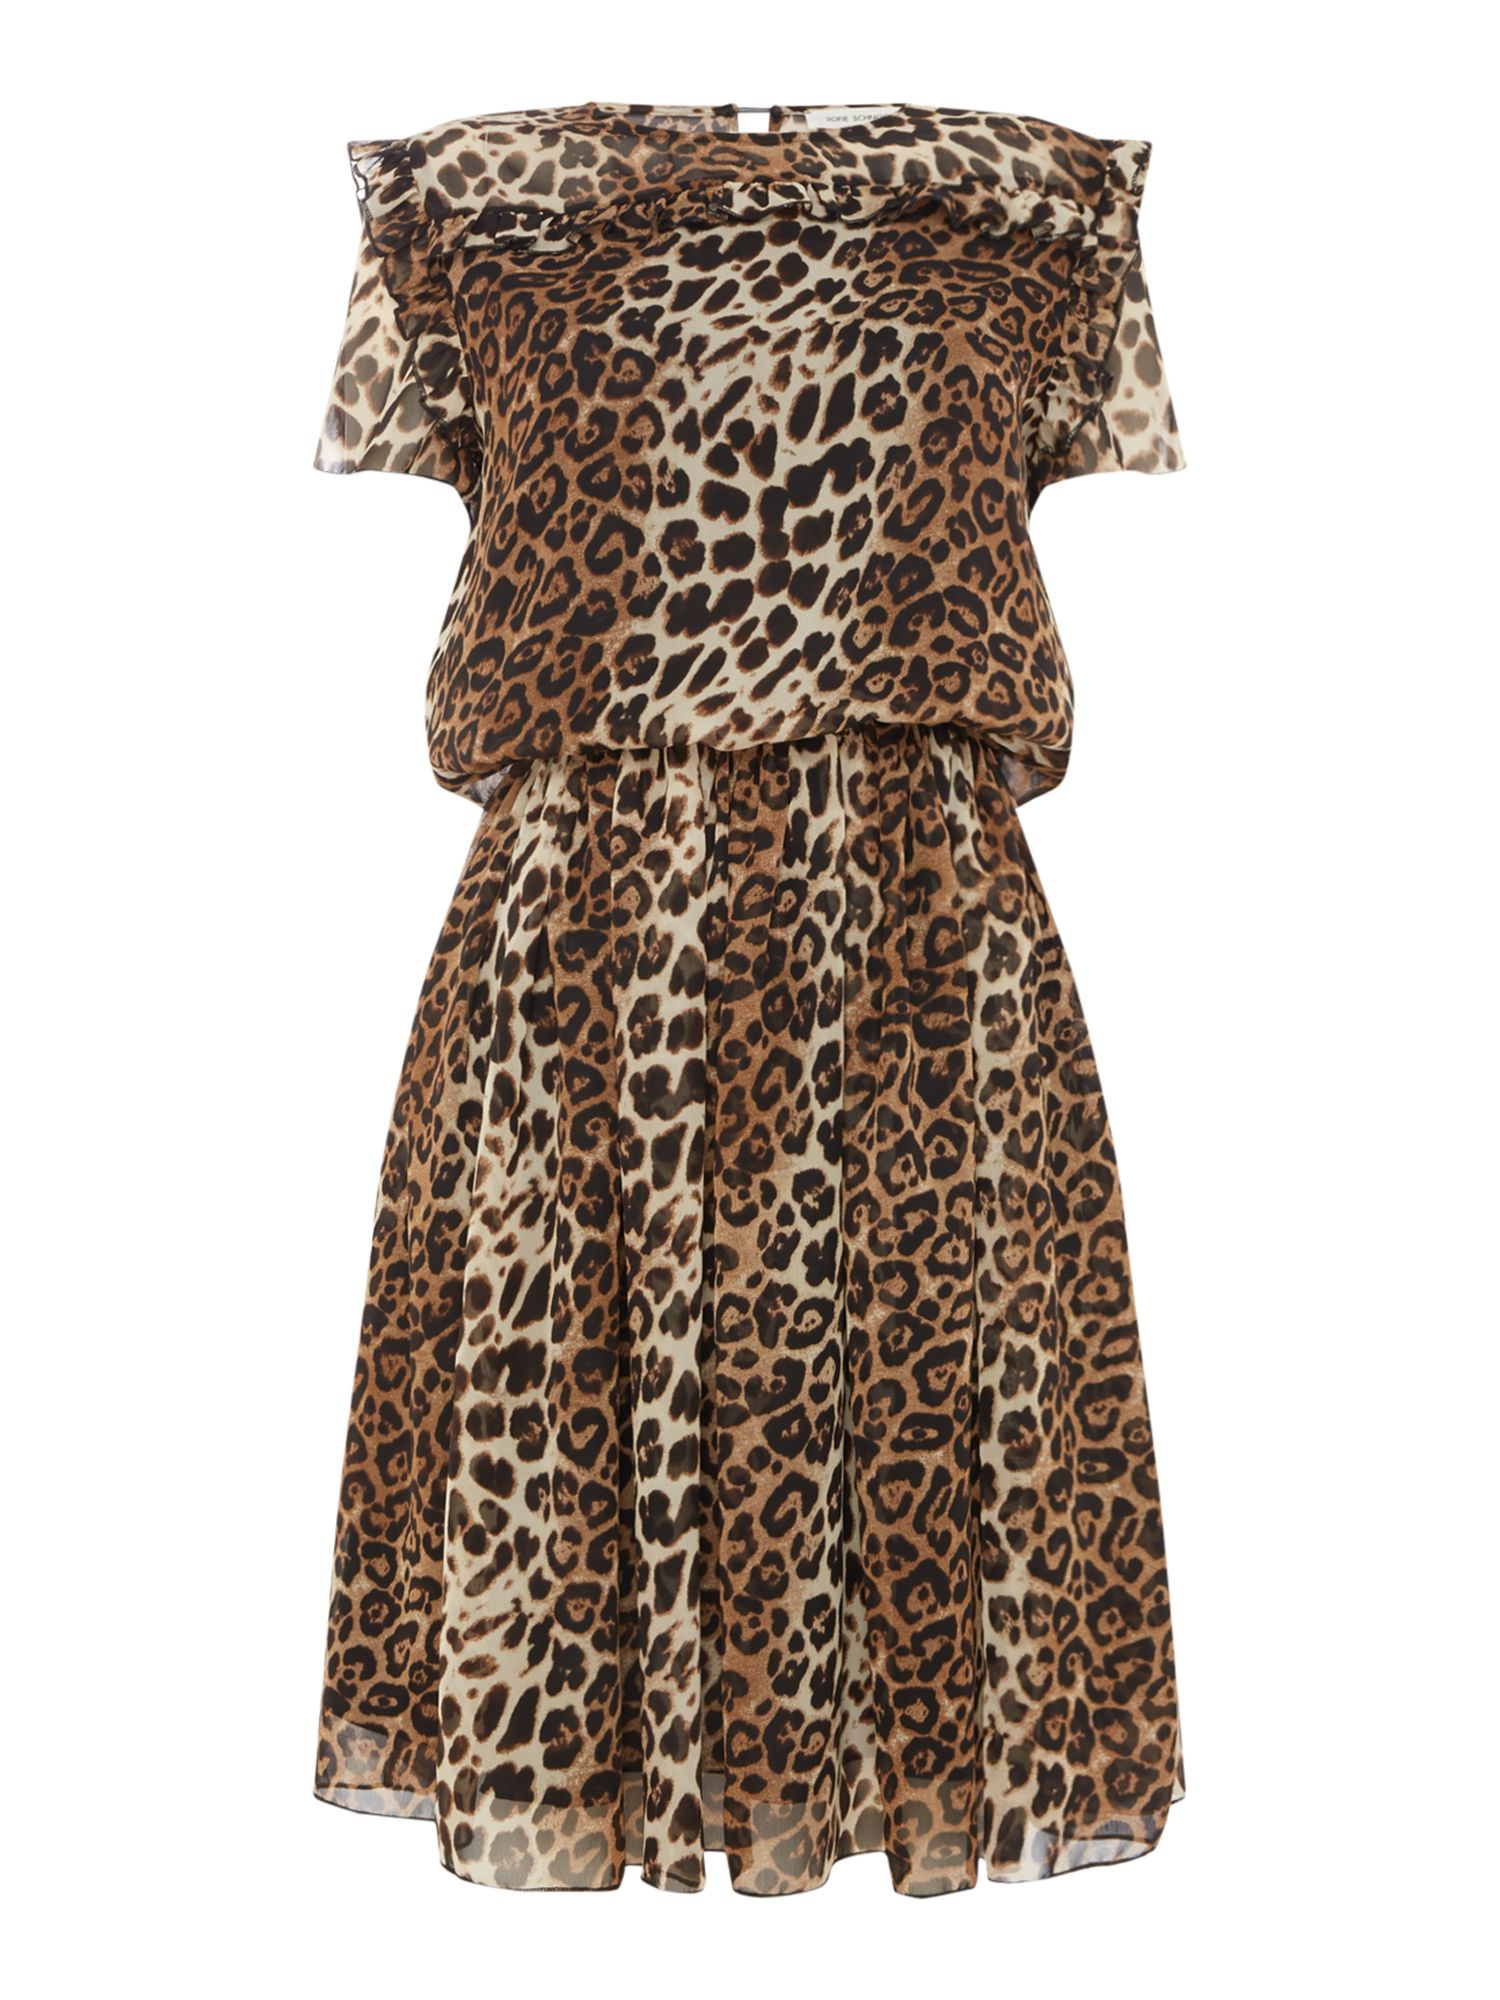 Sofie Schnoor Leopard print dress with ruffle detail, Leopard